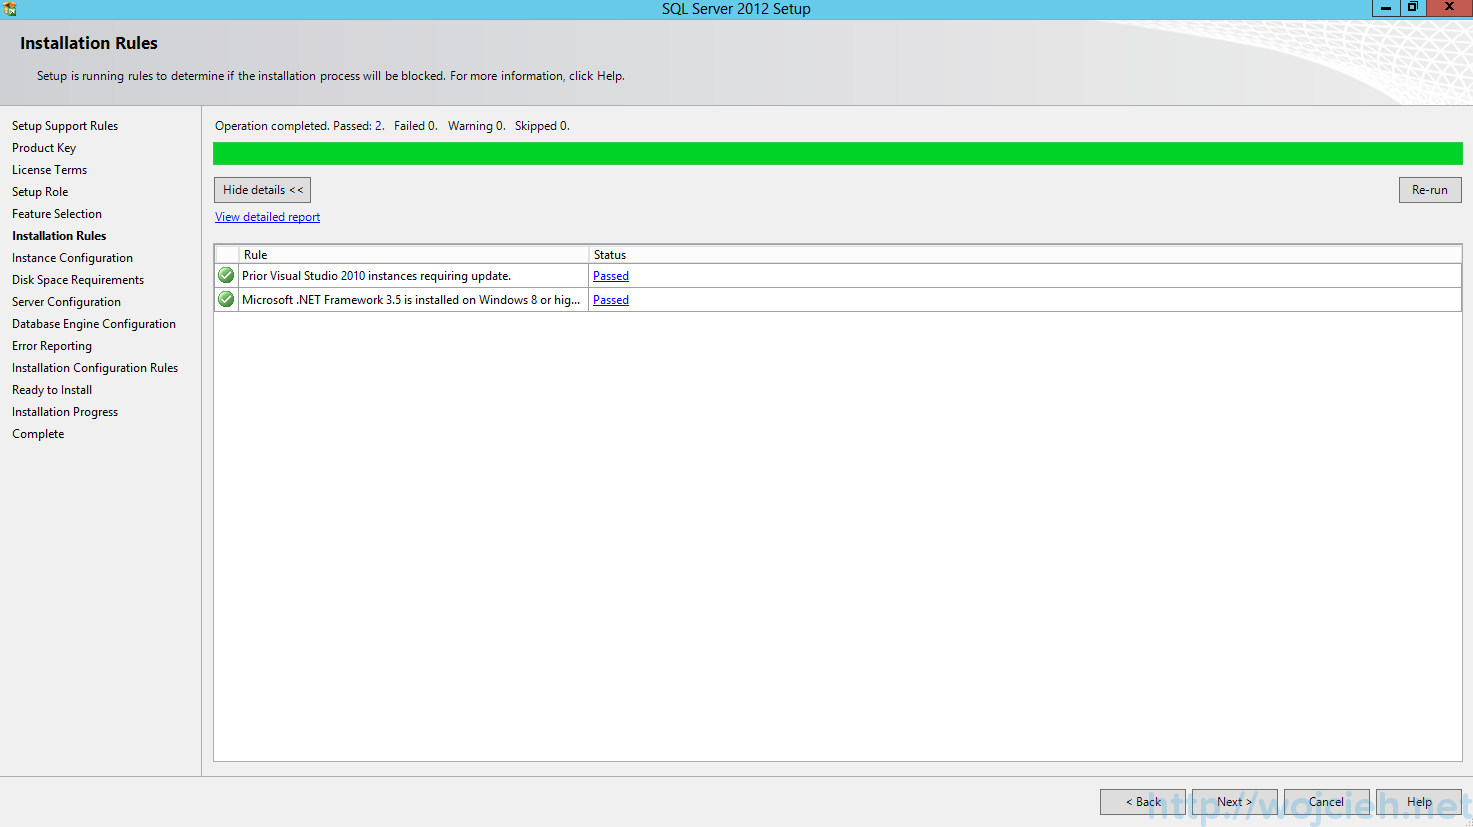 SQL Server 2012 SP1 - Installation Rules